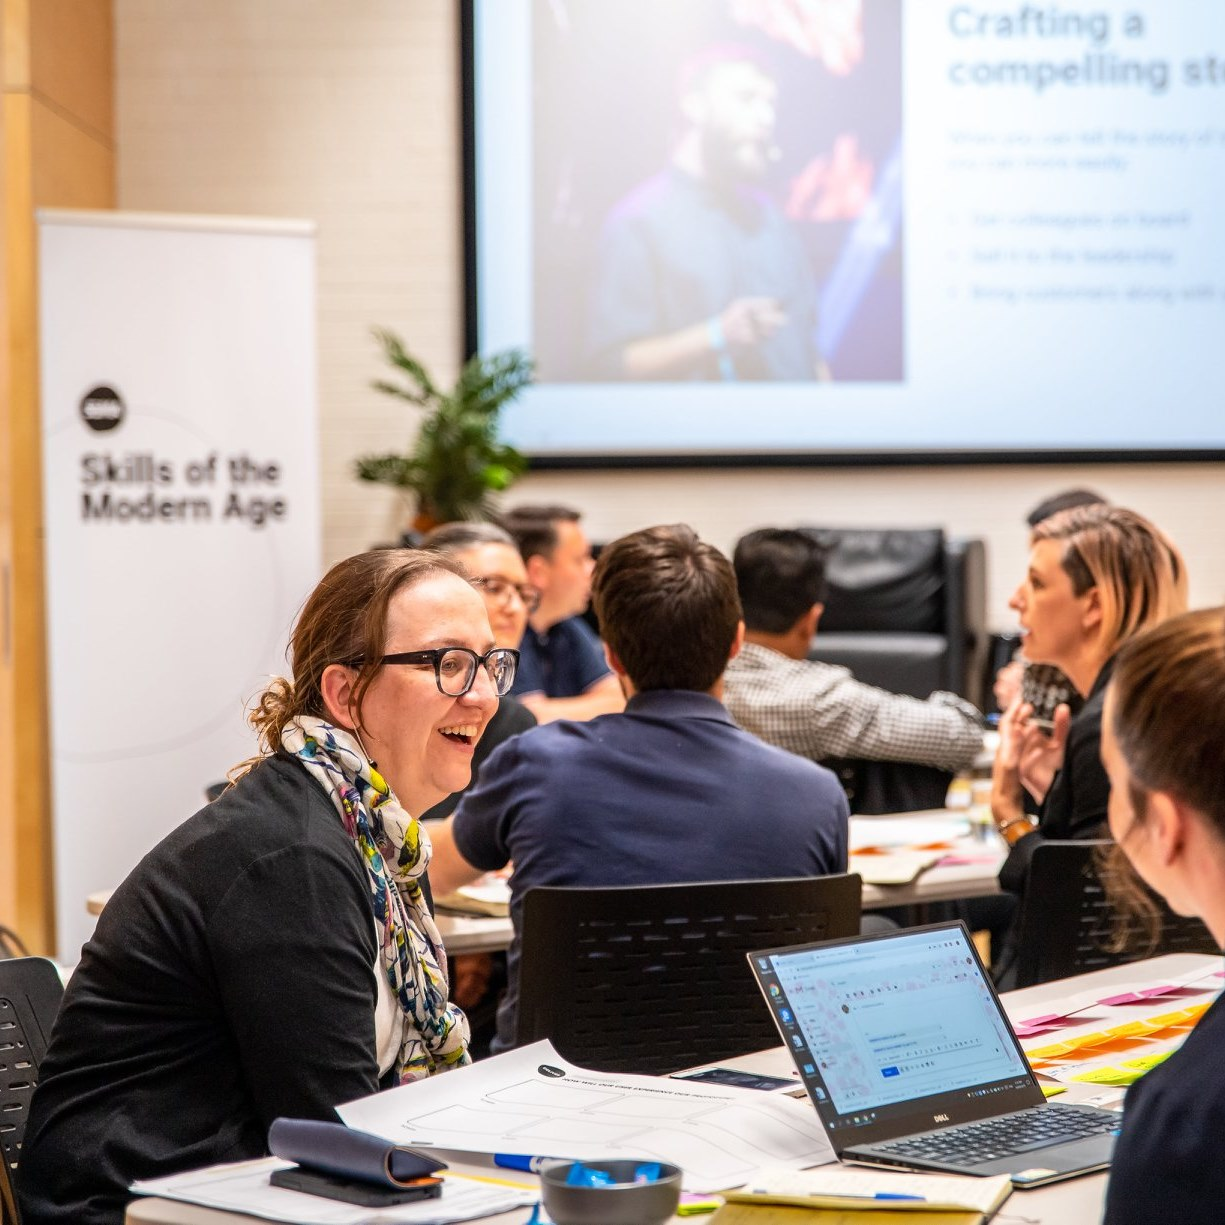 In-person workshop in Perth introducing human-centered design using design thinking principles